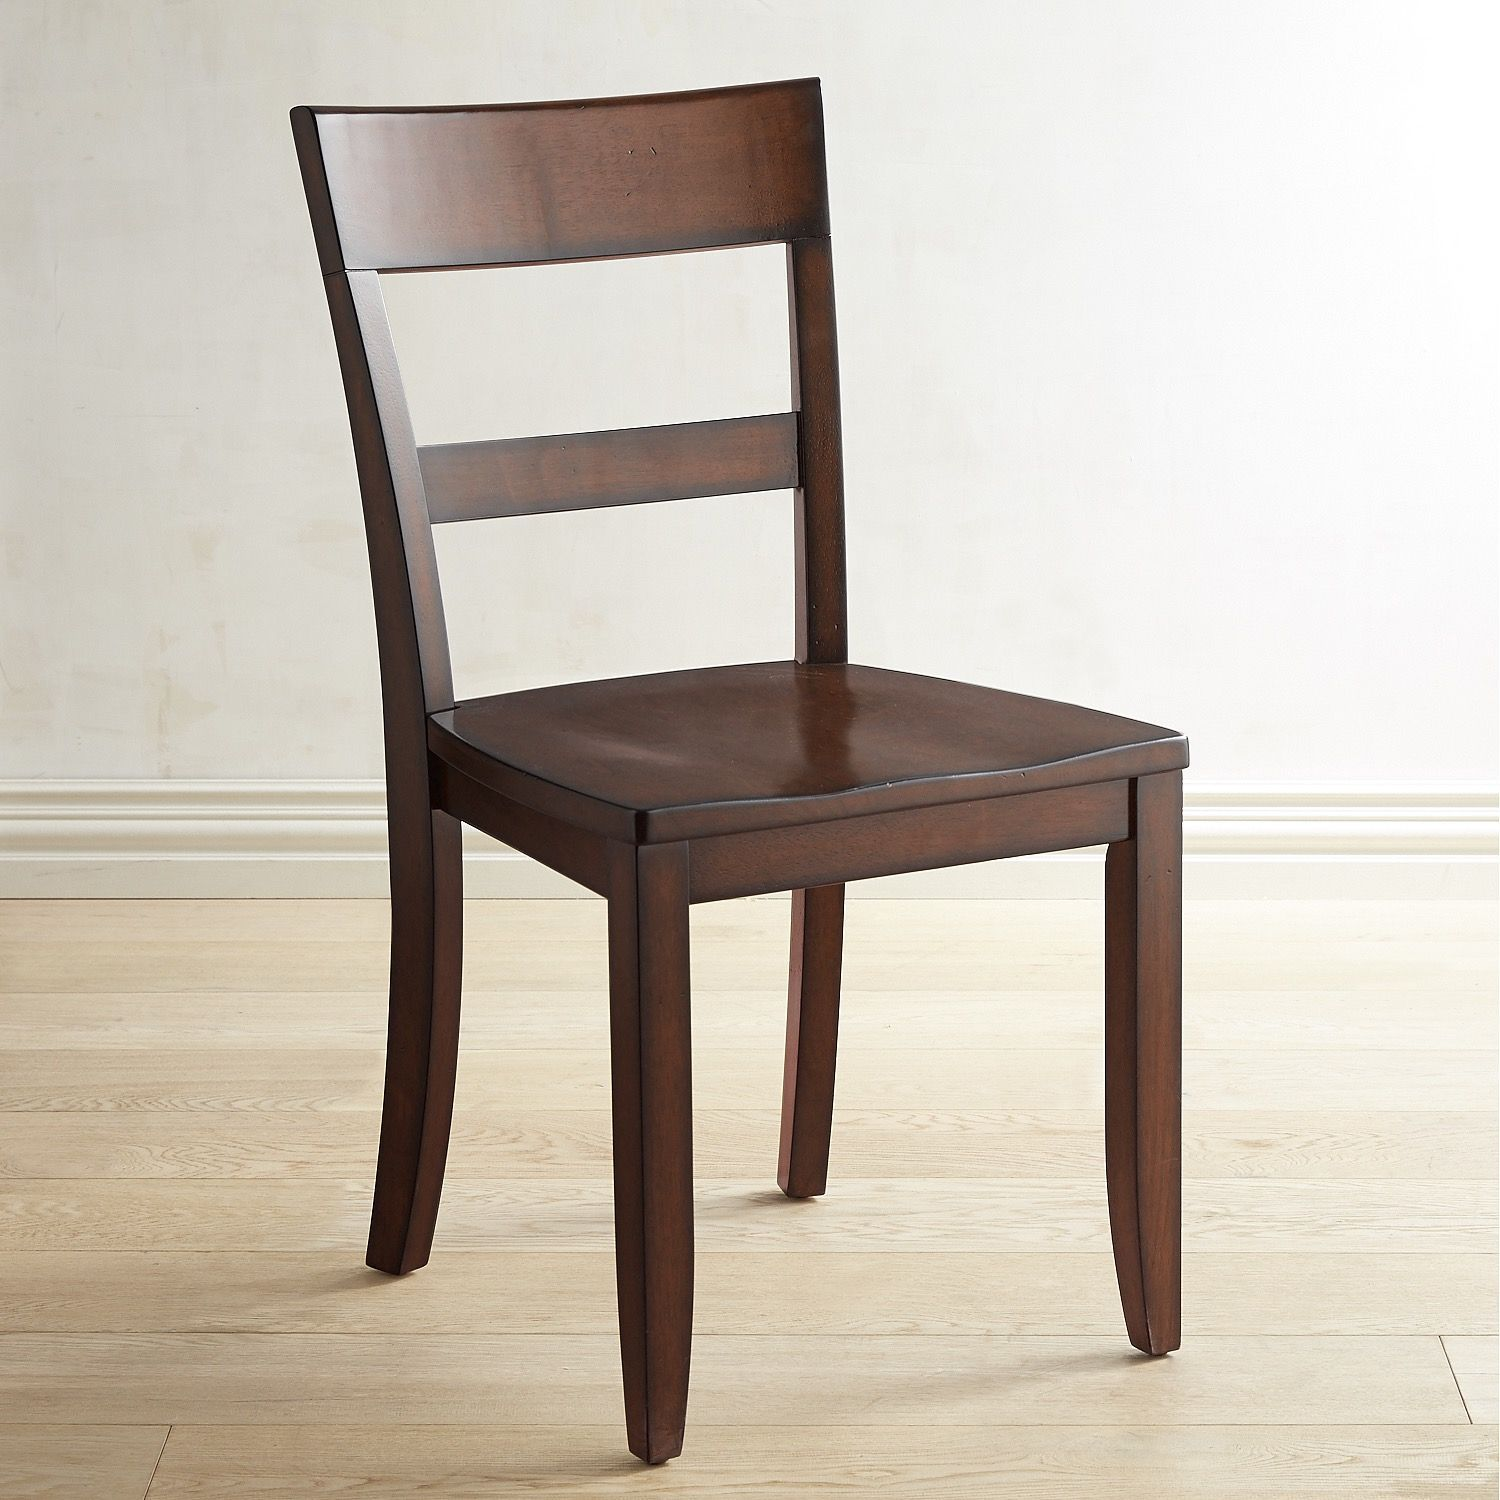 Simon Espresso Dining Chair Dining chairs and Products